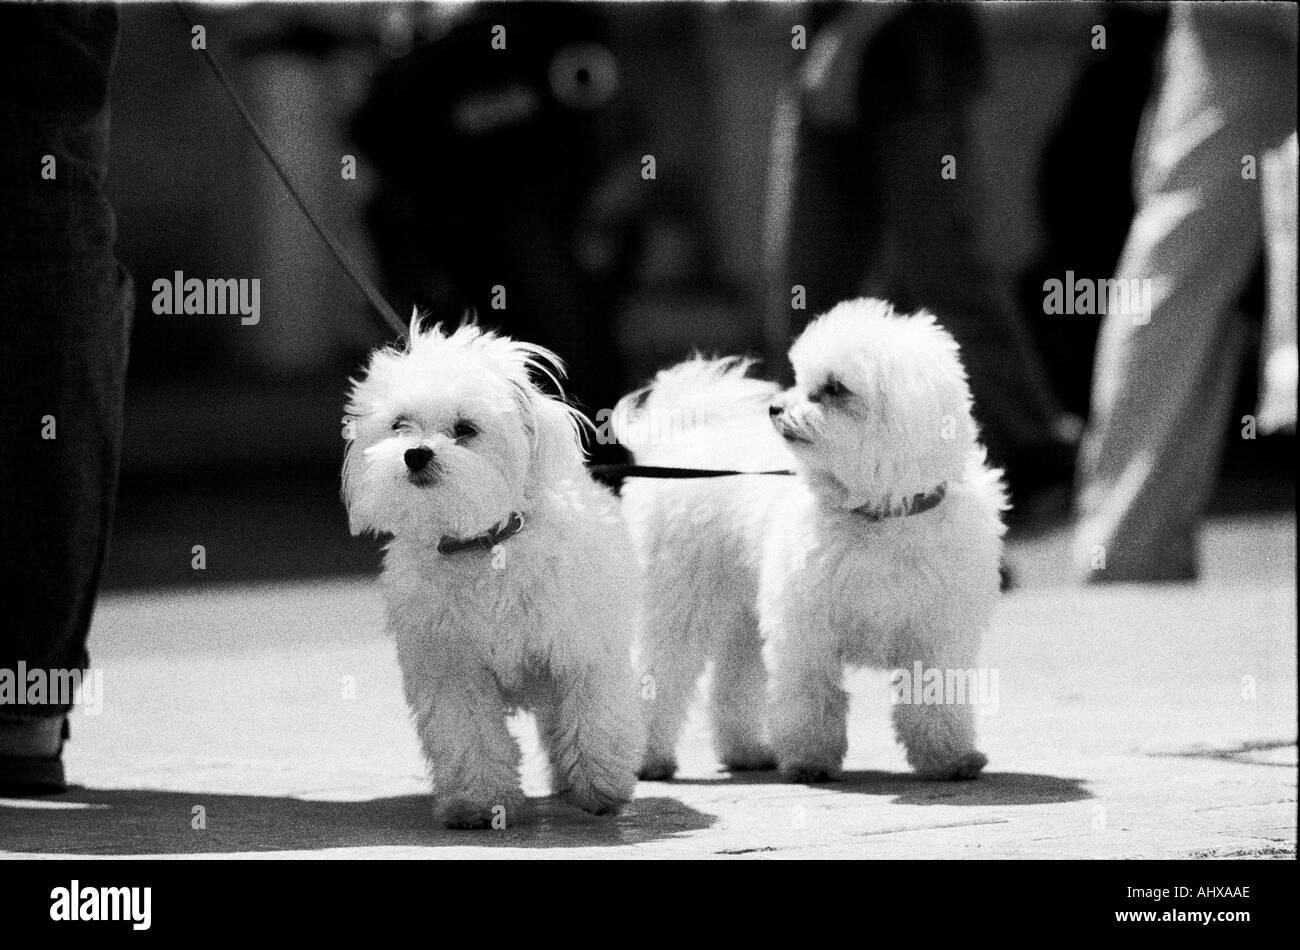 Two Fluffy white dogs at St Tropez in France - Stock Image